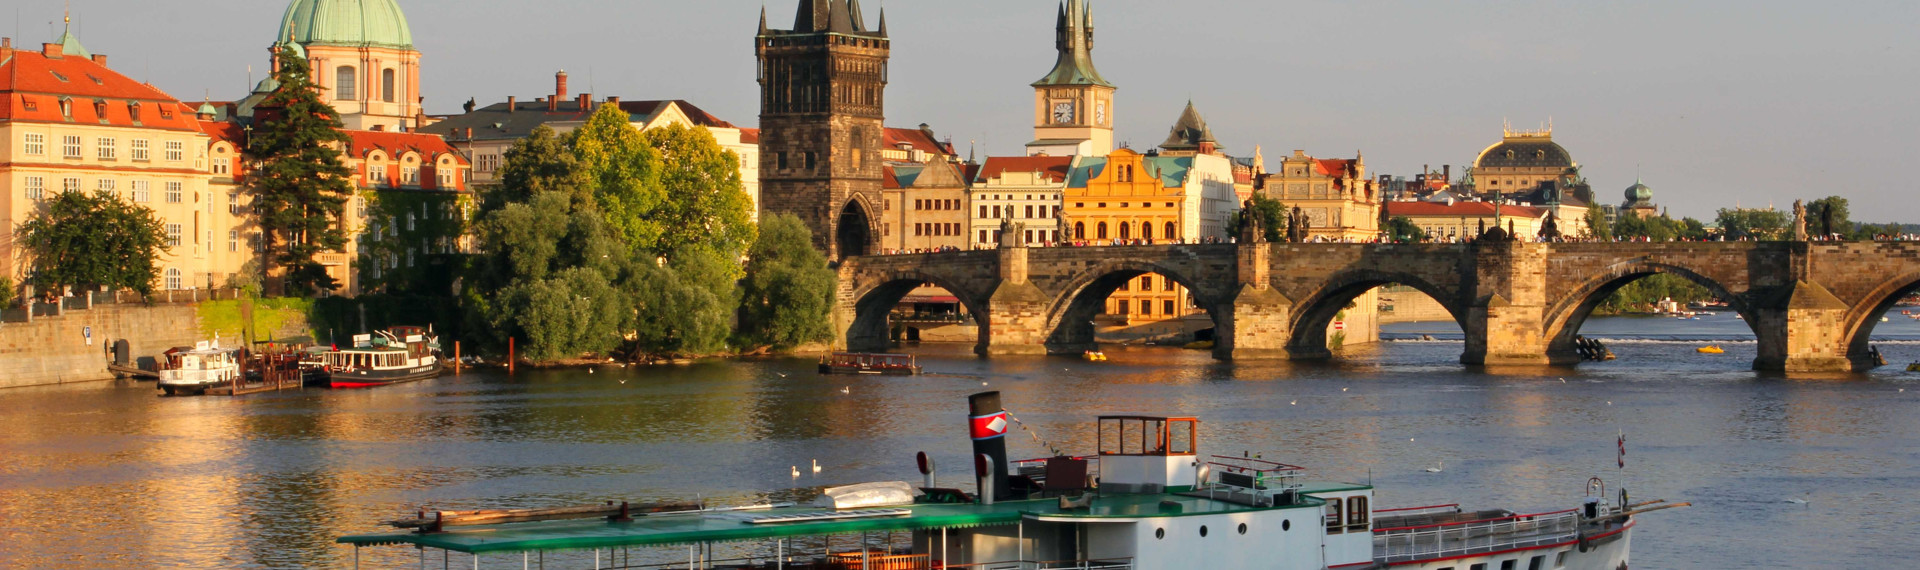 prague river cruise with meal